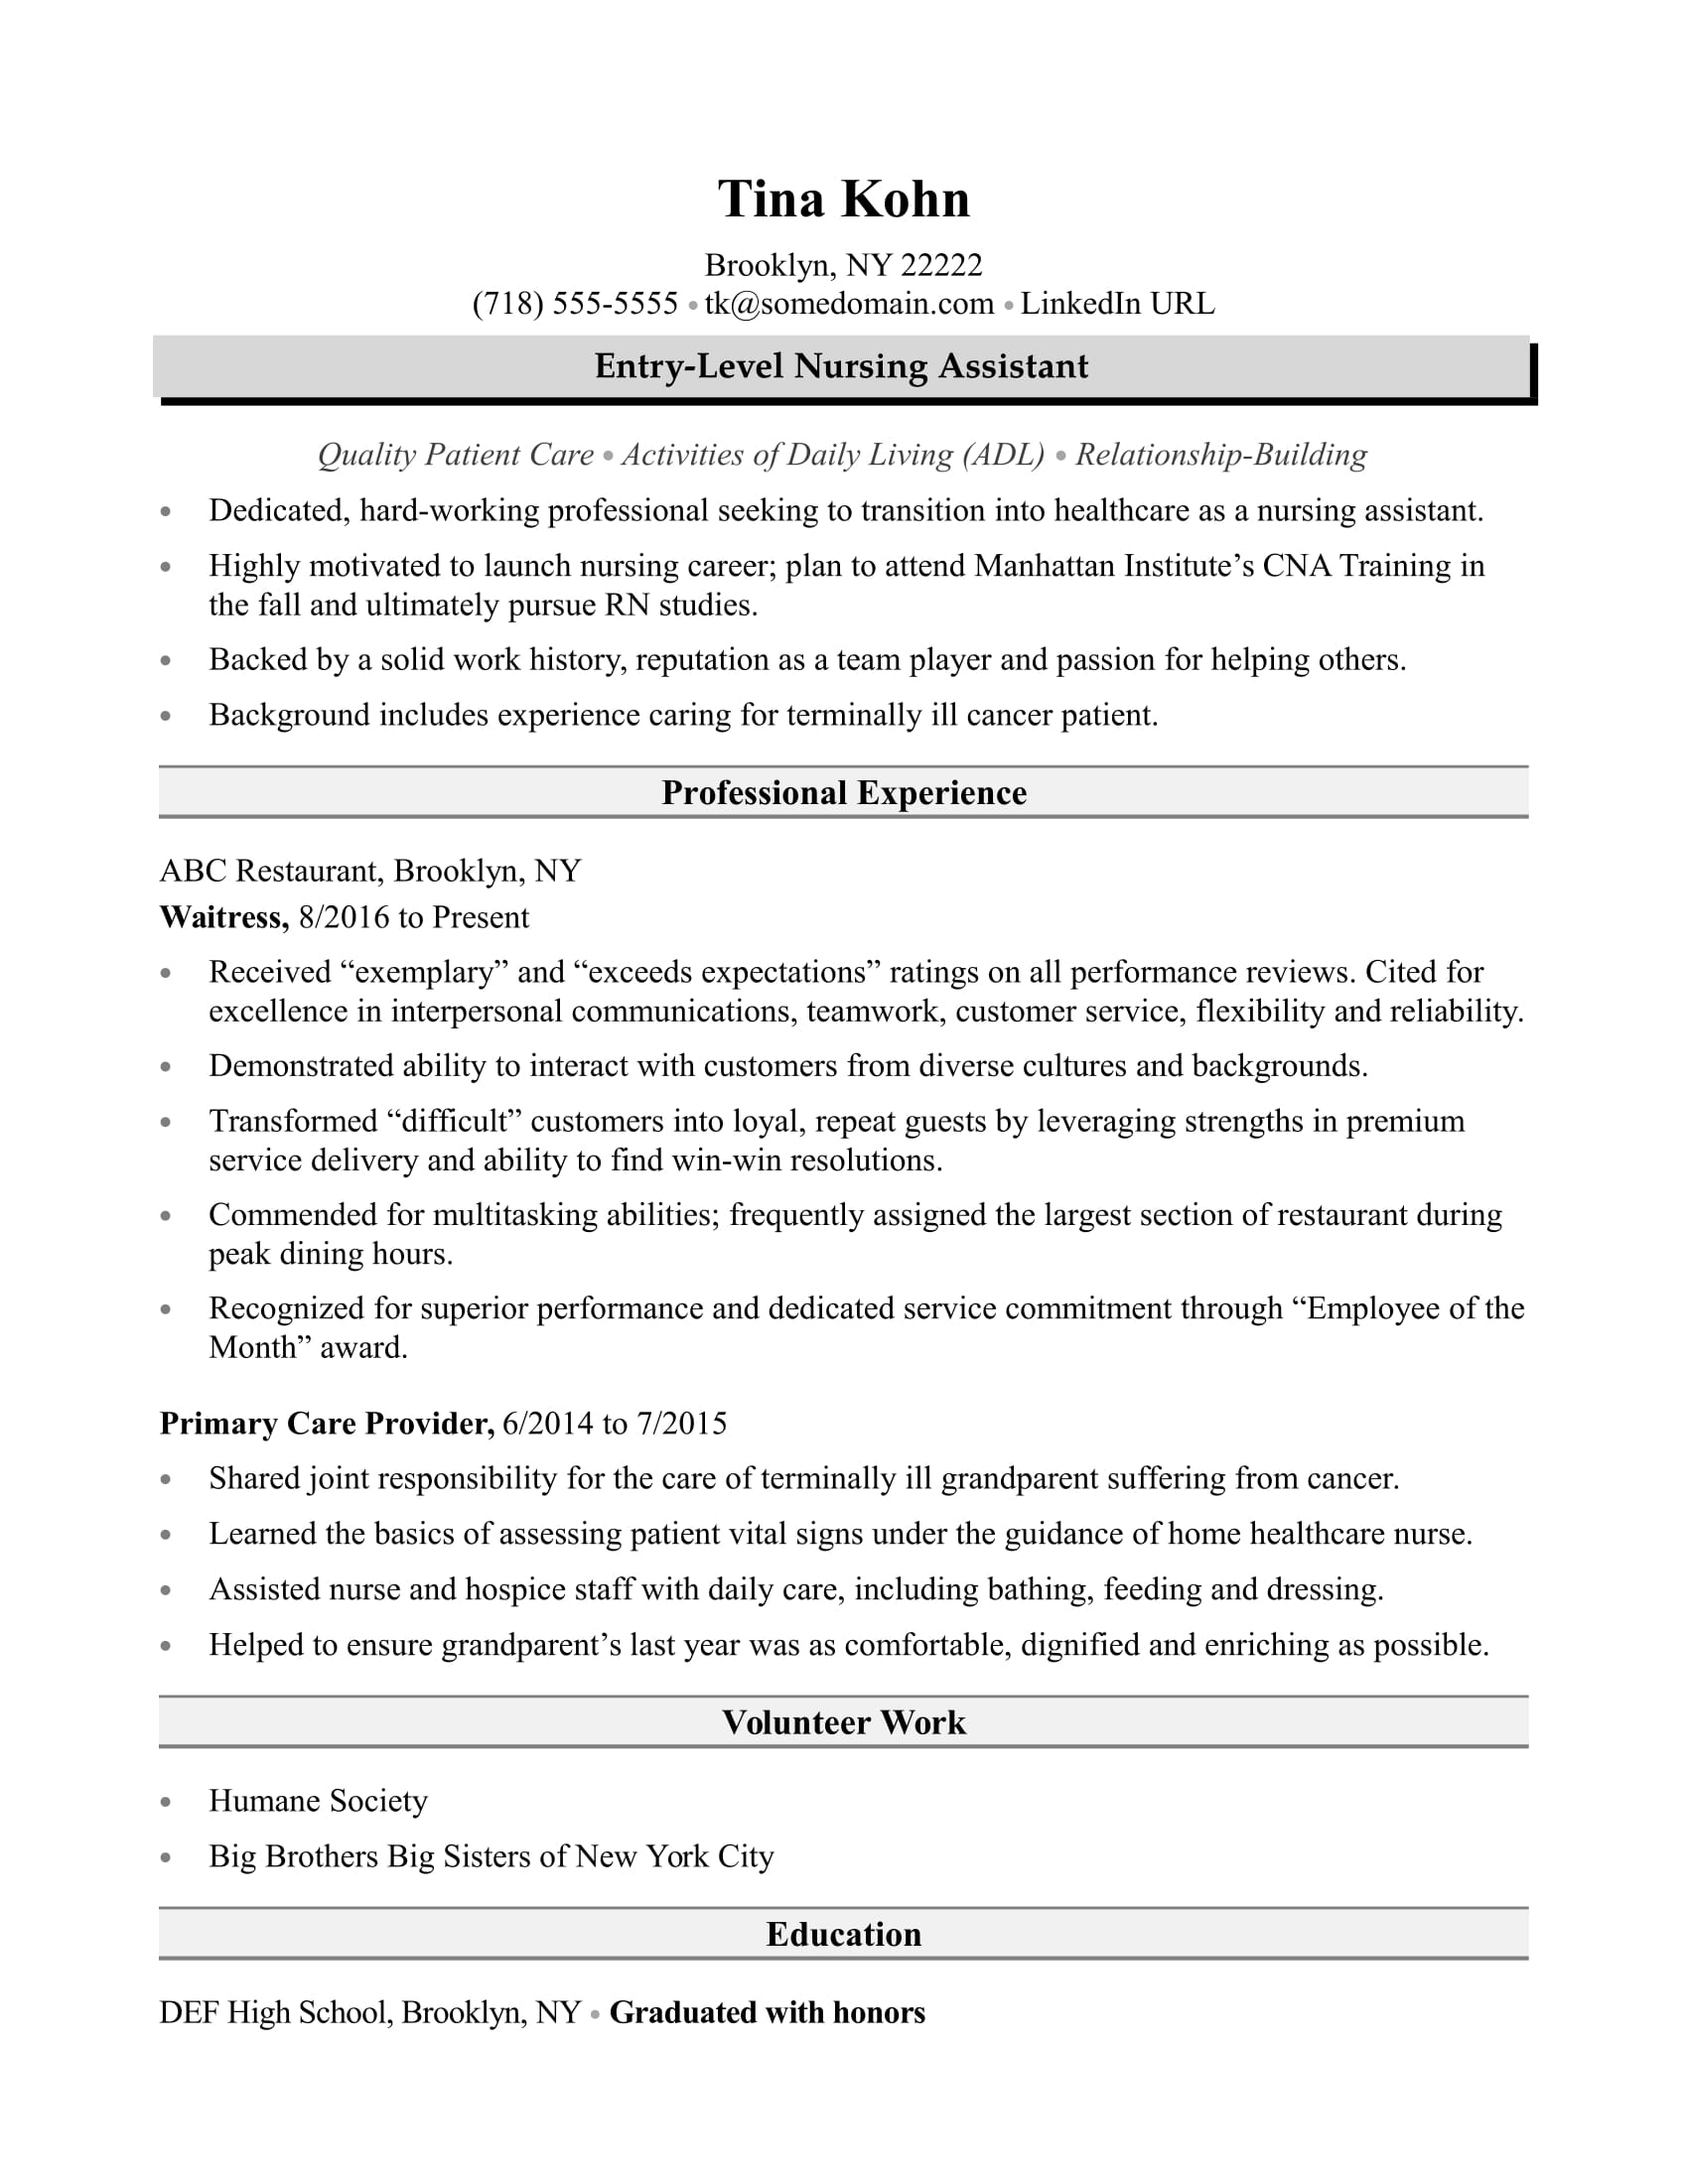 Nursing Job Resume Sample Nursing Assistant Resume Sample Monster